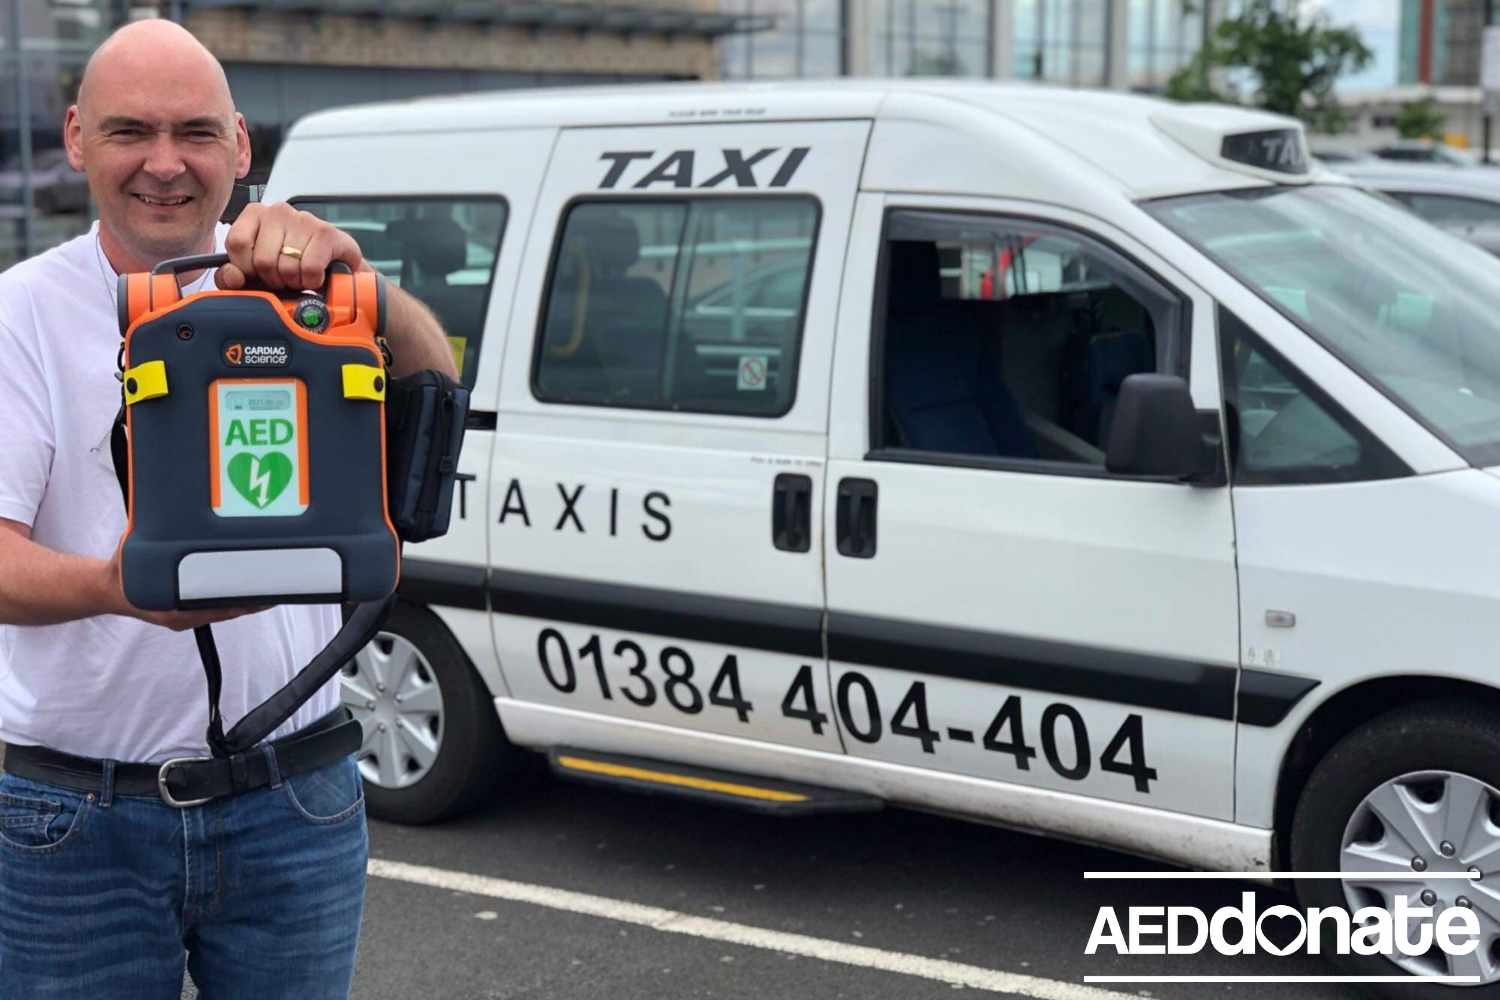 Taxi driver puts his community first